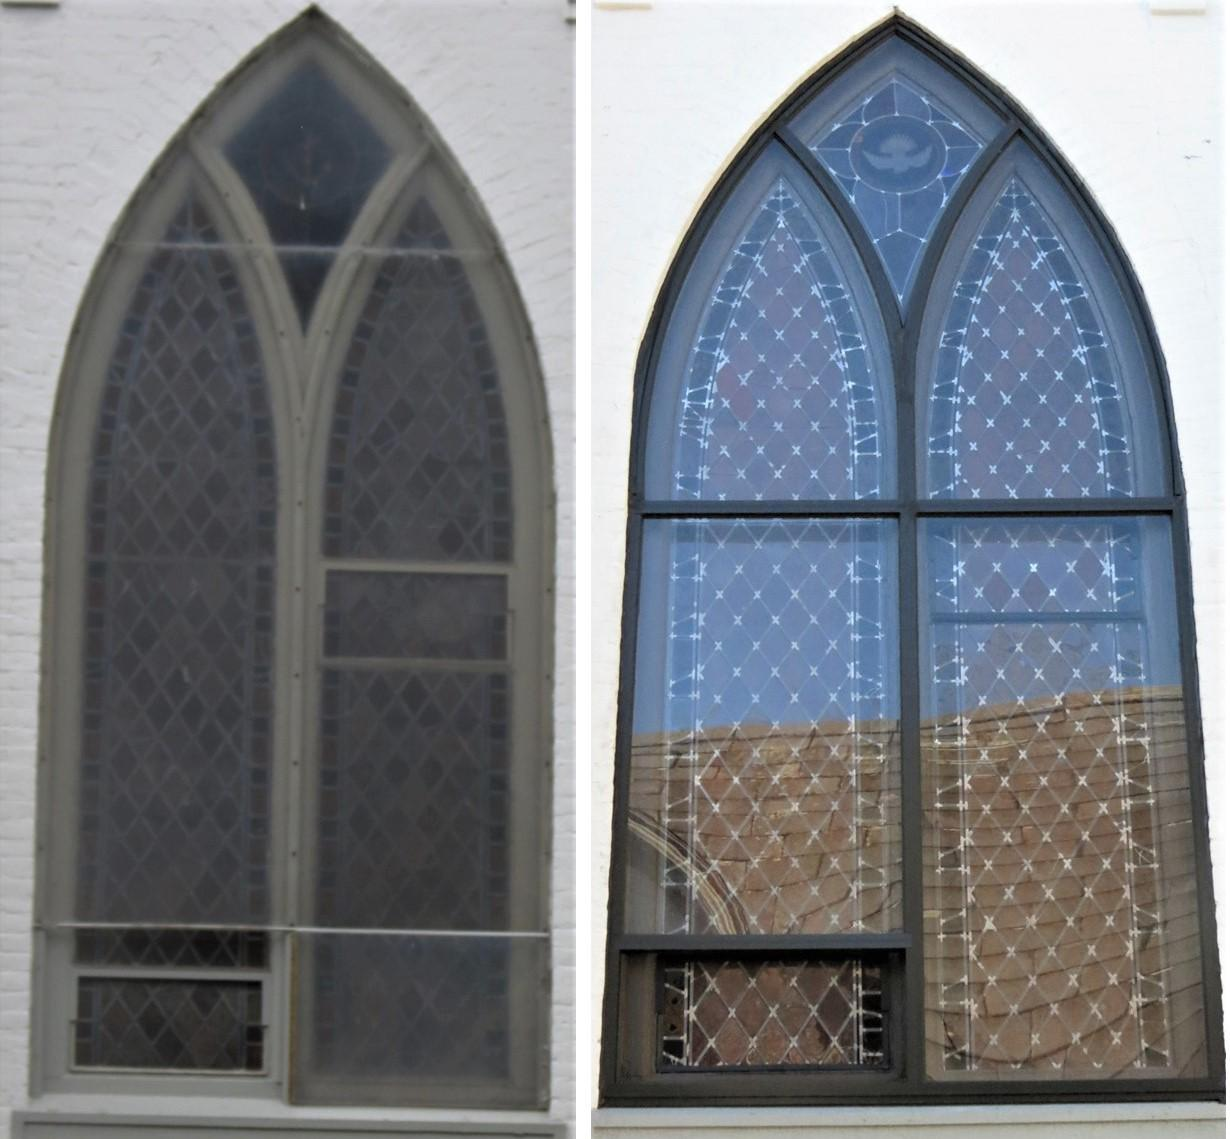 stained glass windows, stained glass window repair, stained glass window protective coverings